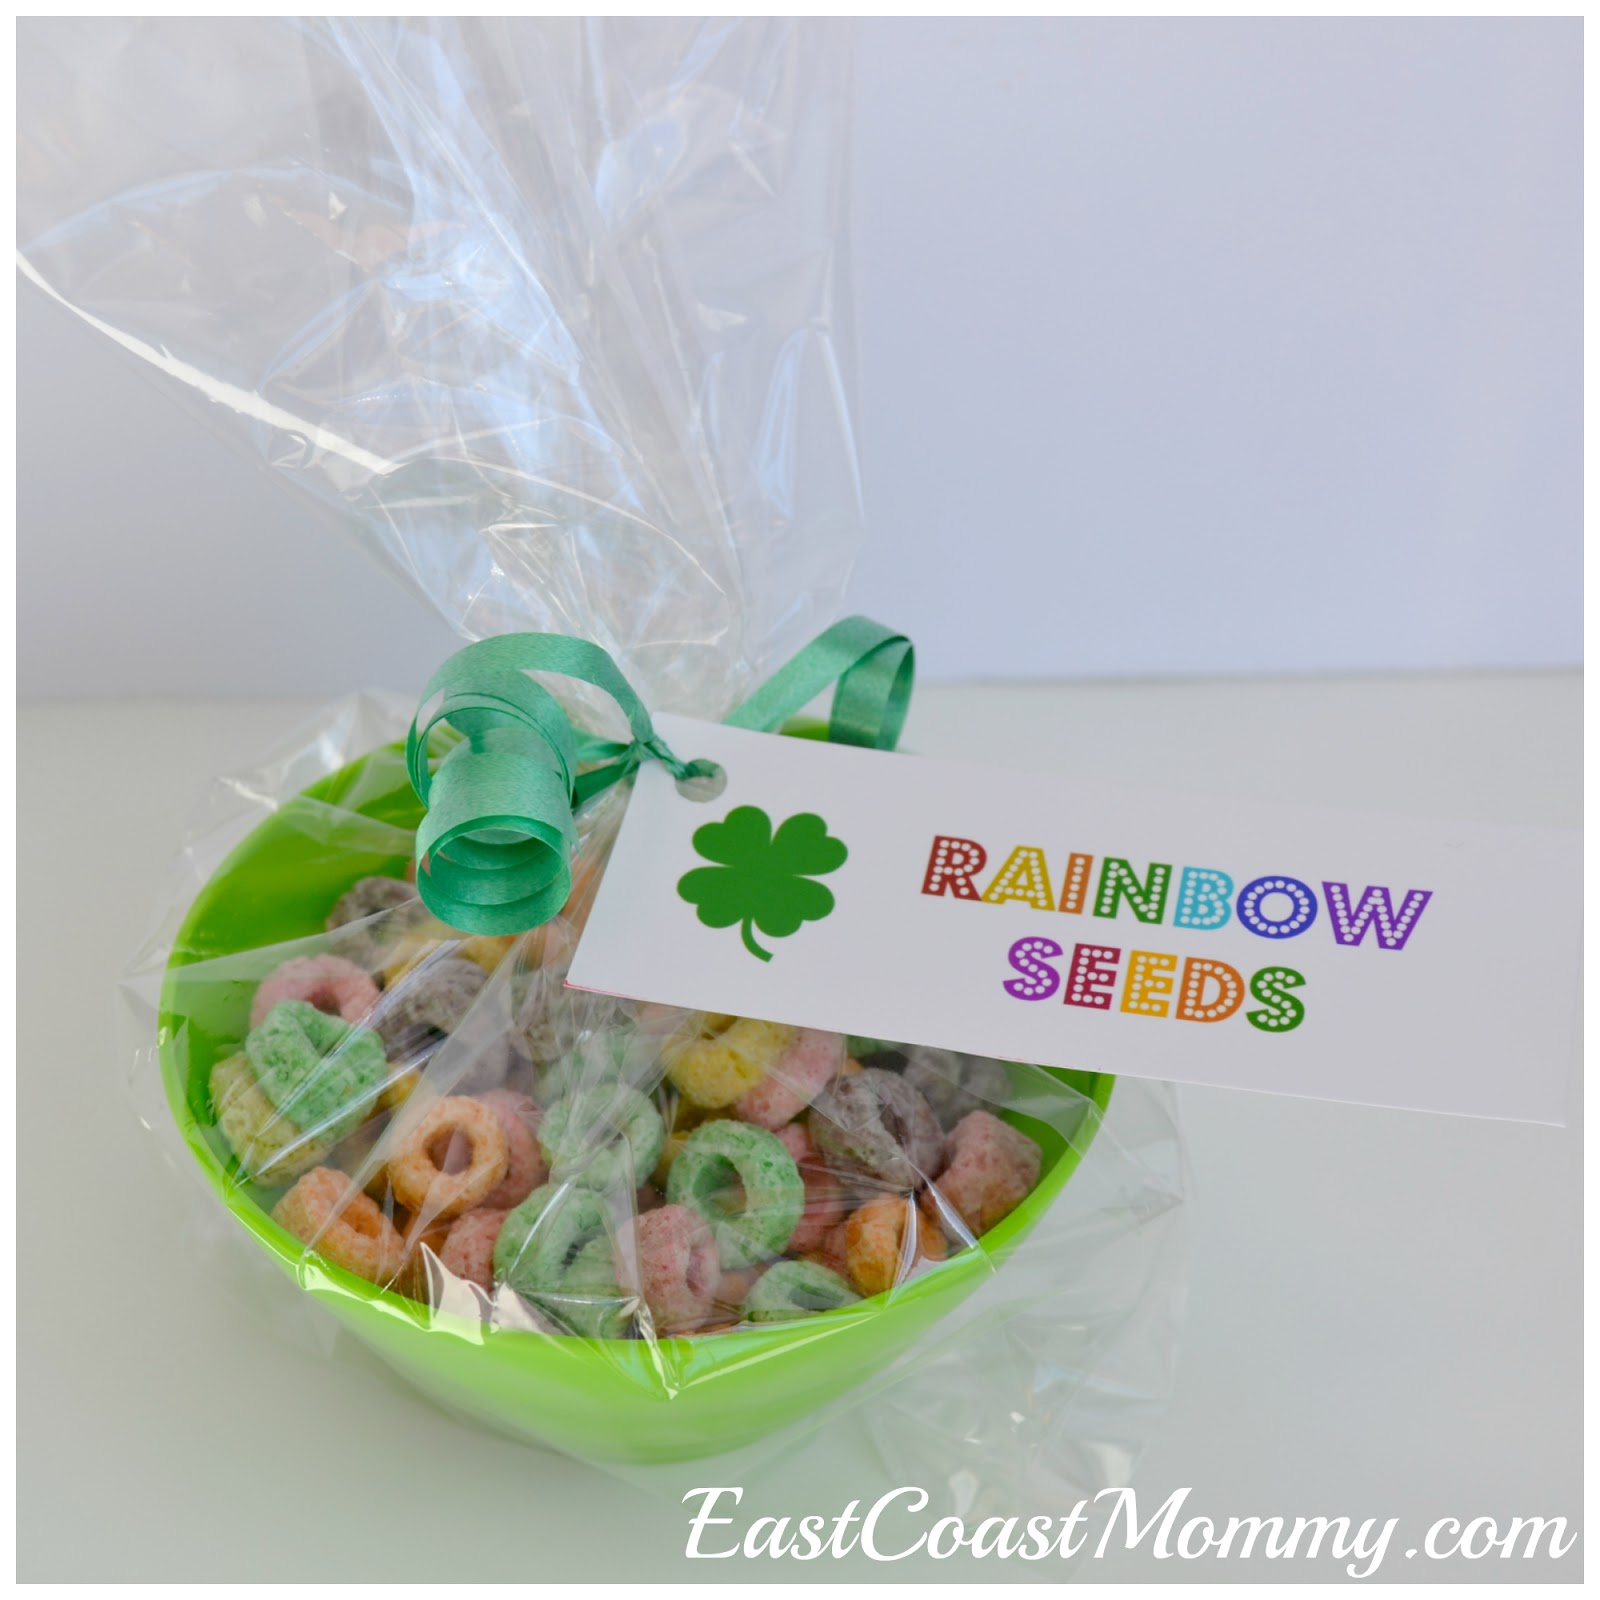 East Coast Mommy: St.Patrick's Day Breakfast (Rainbow Seeds